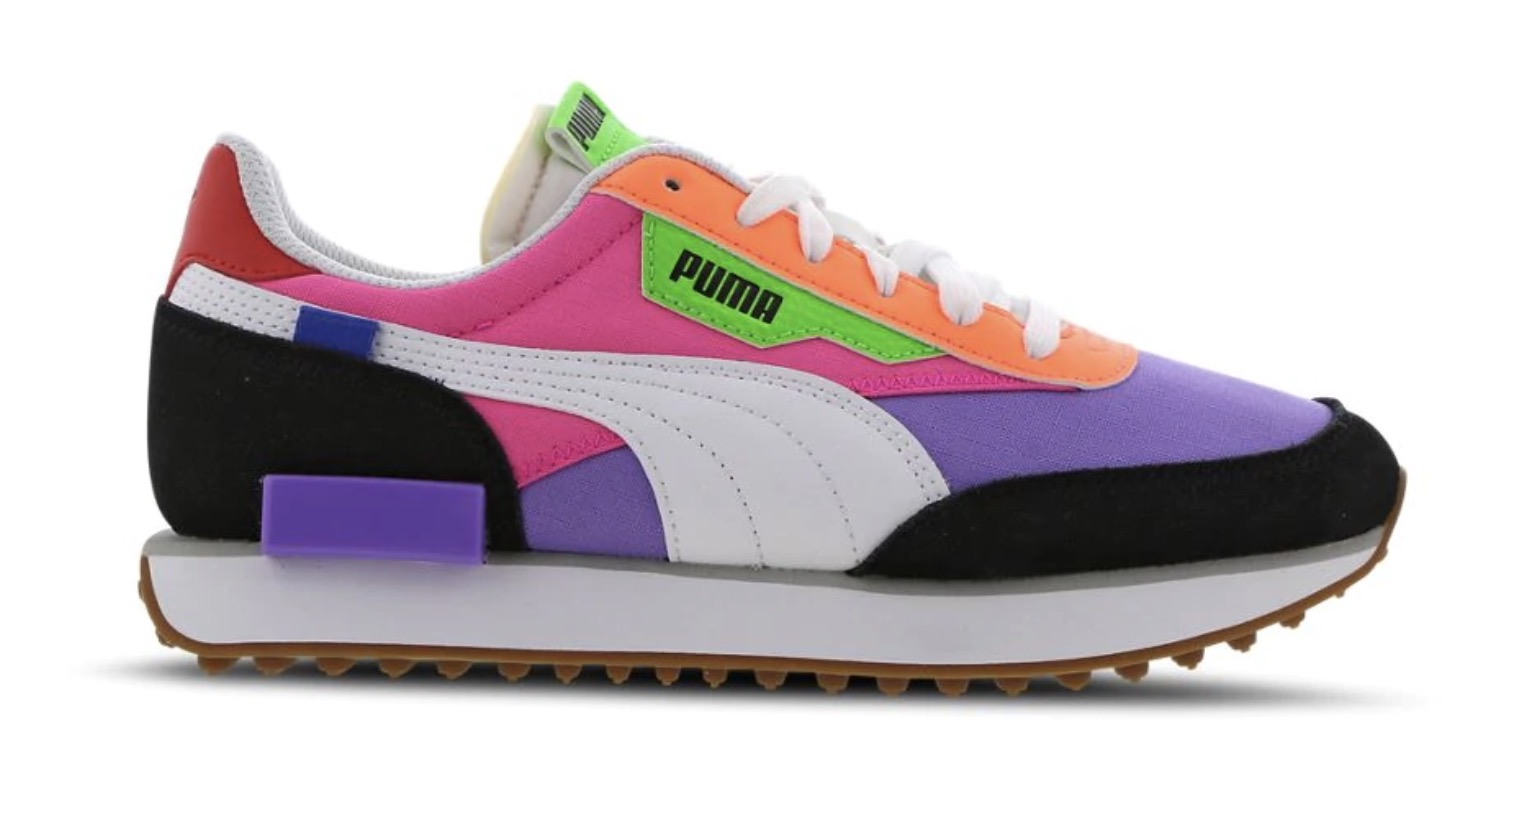 Puma Rider Multicoloured